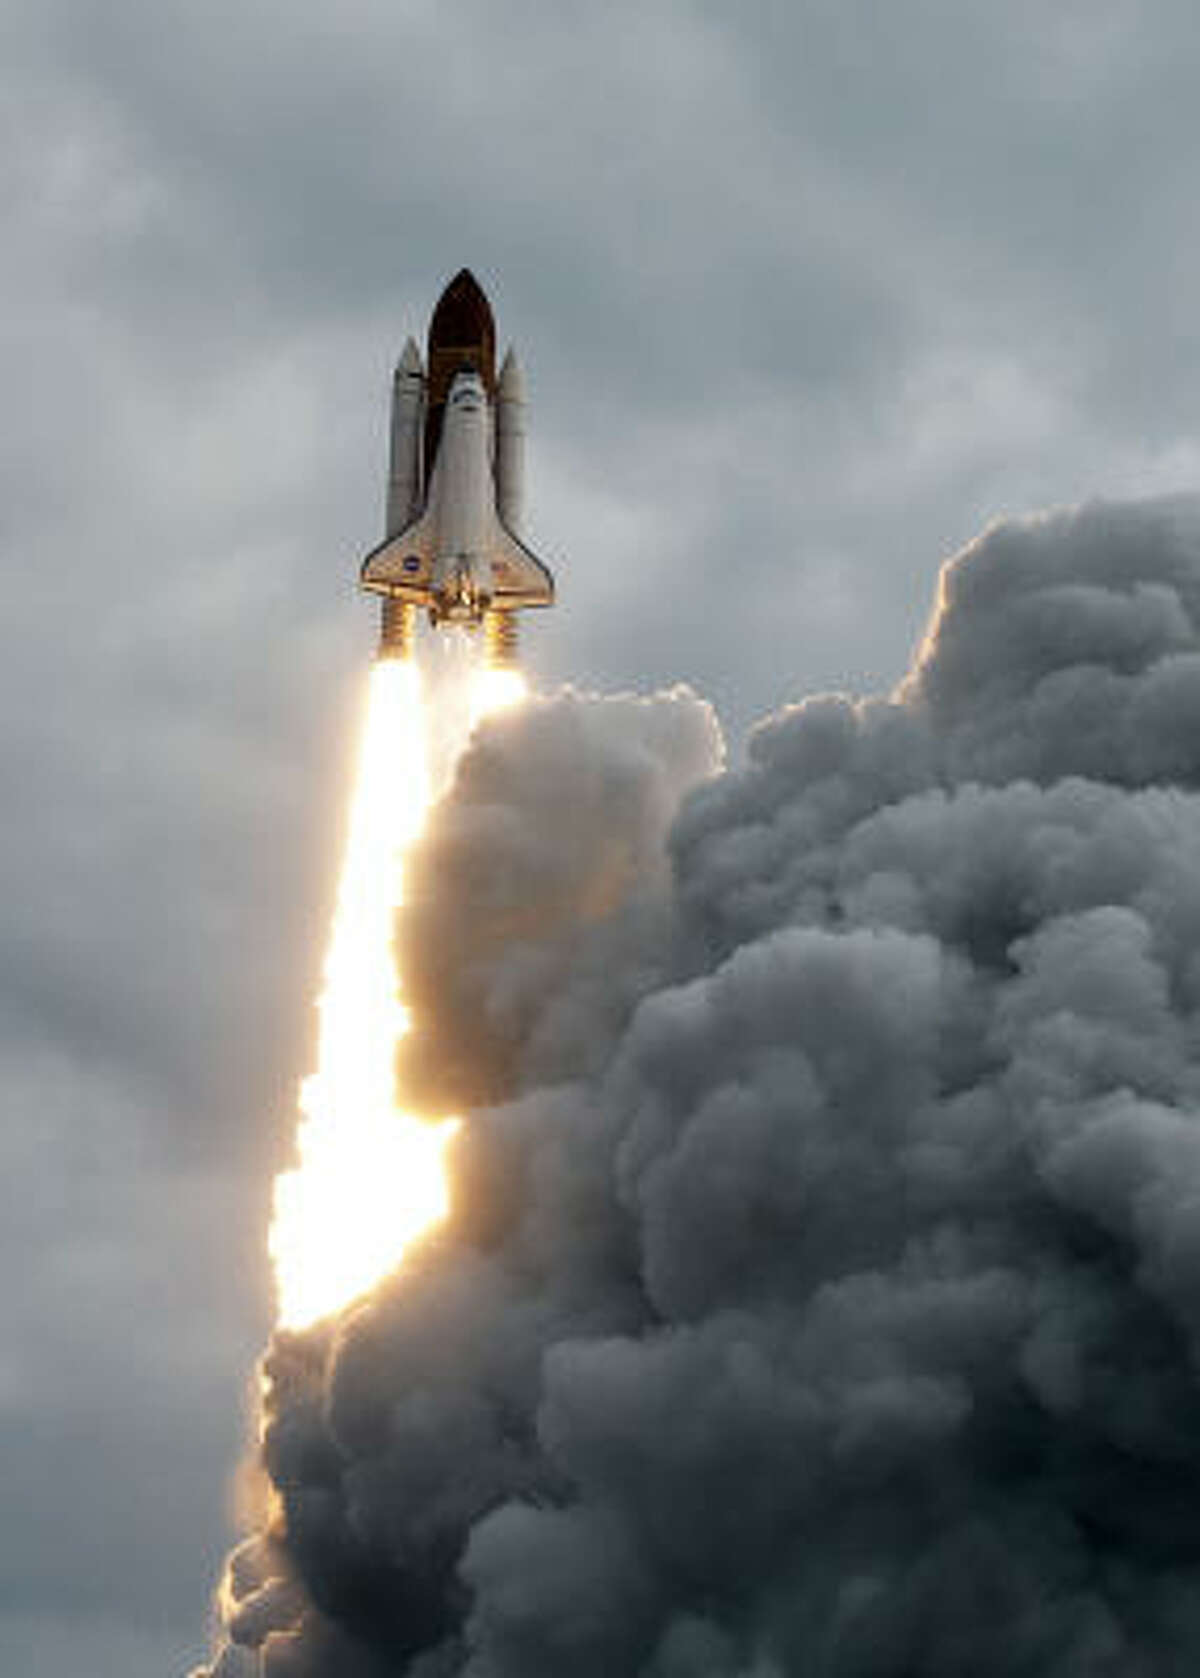 The space shuttle Endeavour lifts off on the STS-134 mission to the international space station from launch pad 39 A at NASA's Kennedy Space Center Monday, May 16, 2011, in Kennedy Space Center.